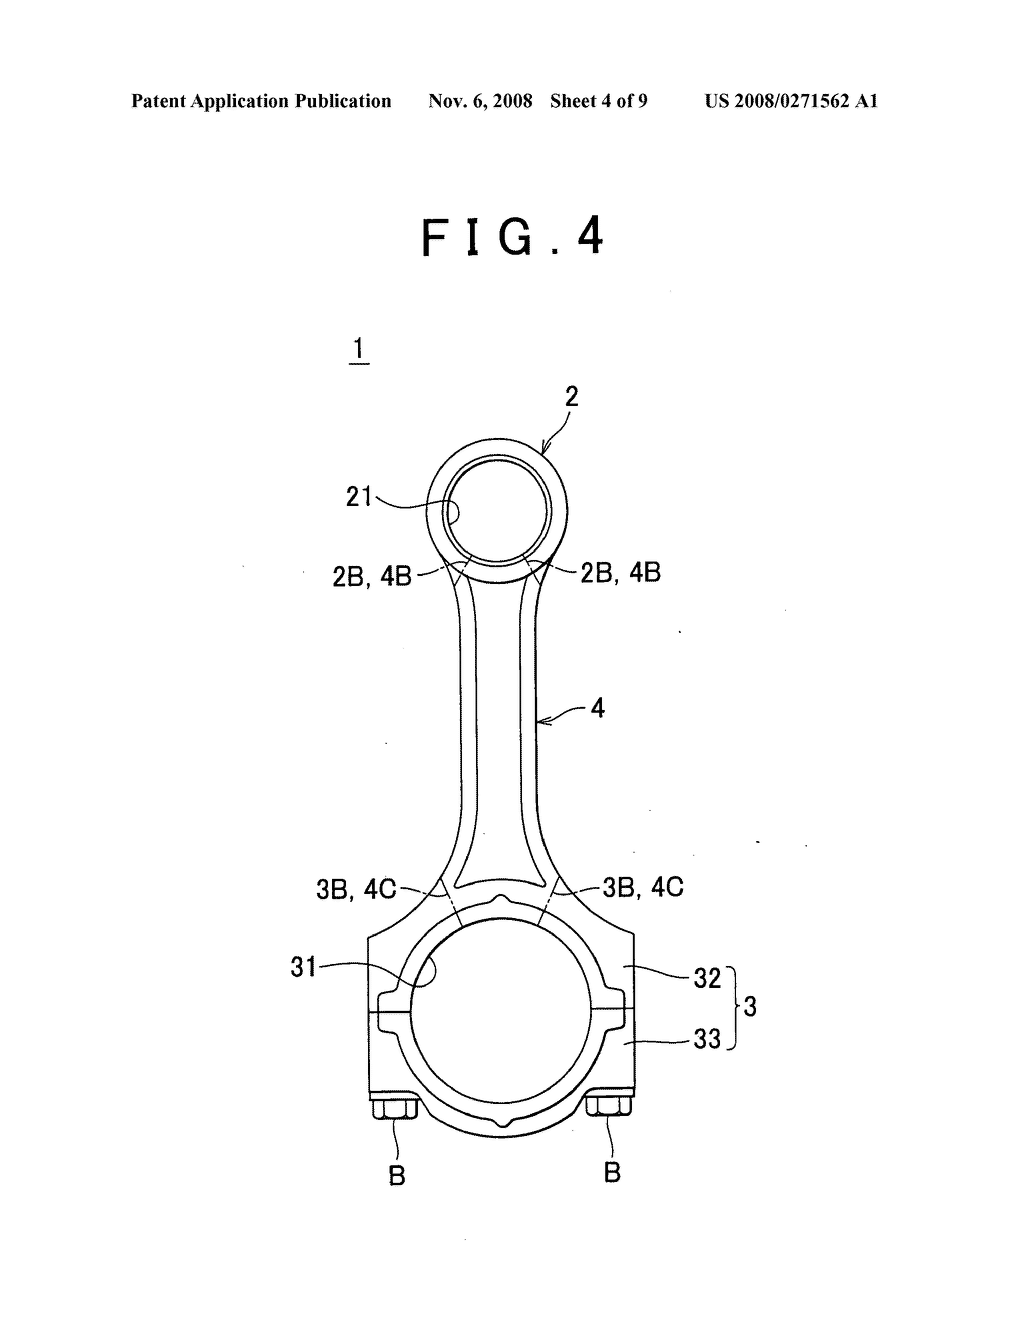 connecting rod for internal combustion engine and method of rh patentsencyclopedia com pushrod engine diagram hot rod engine diagram